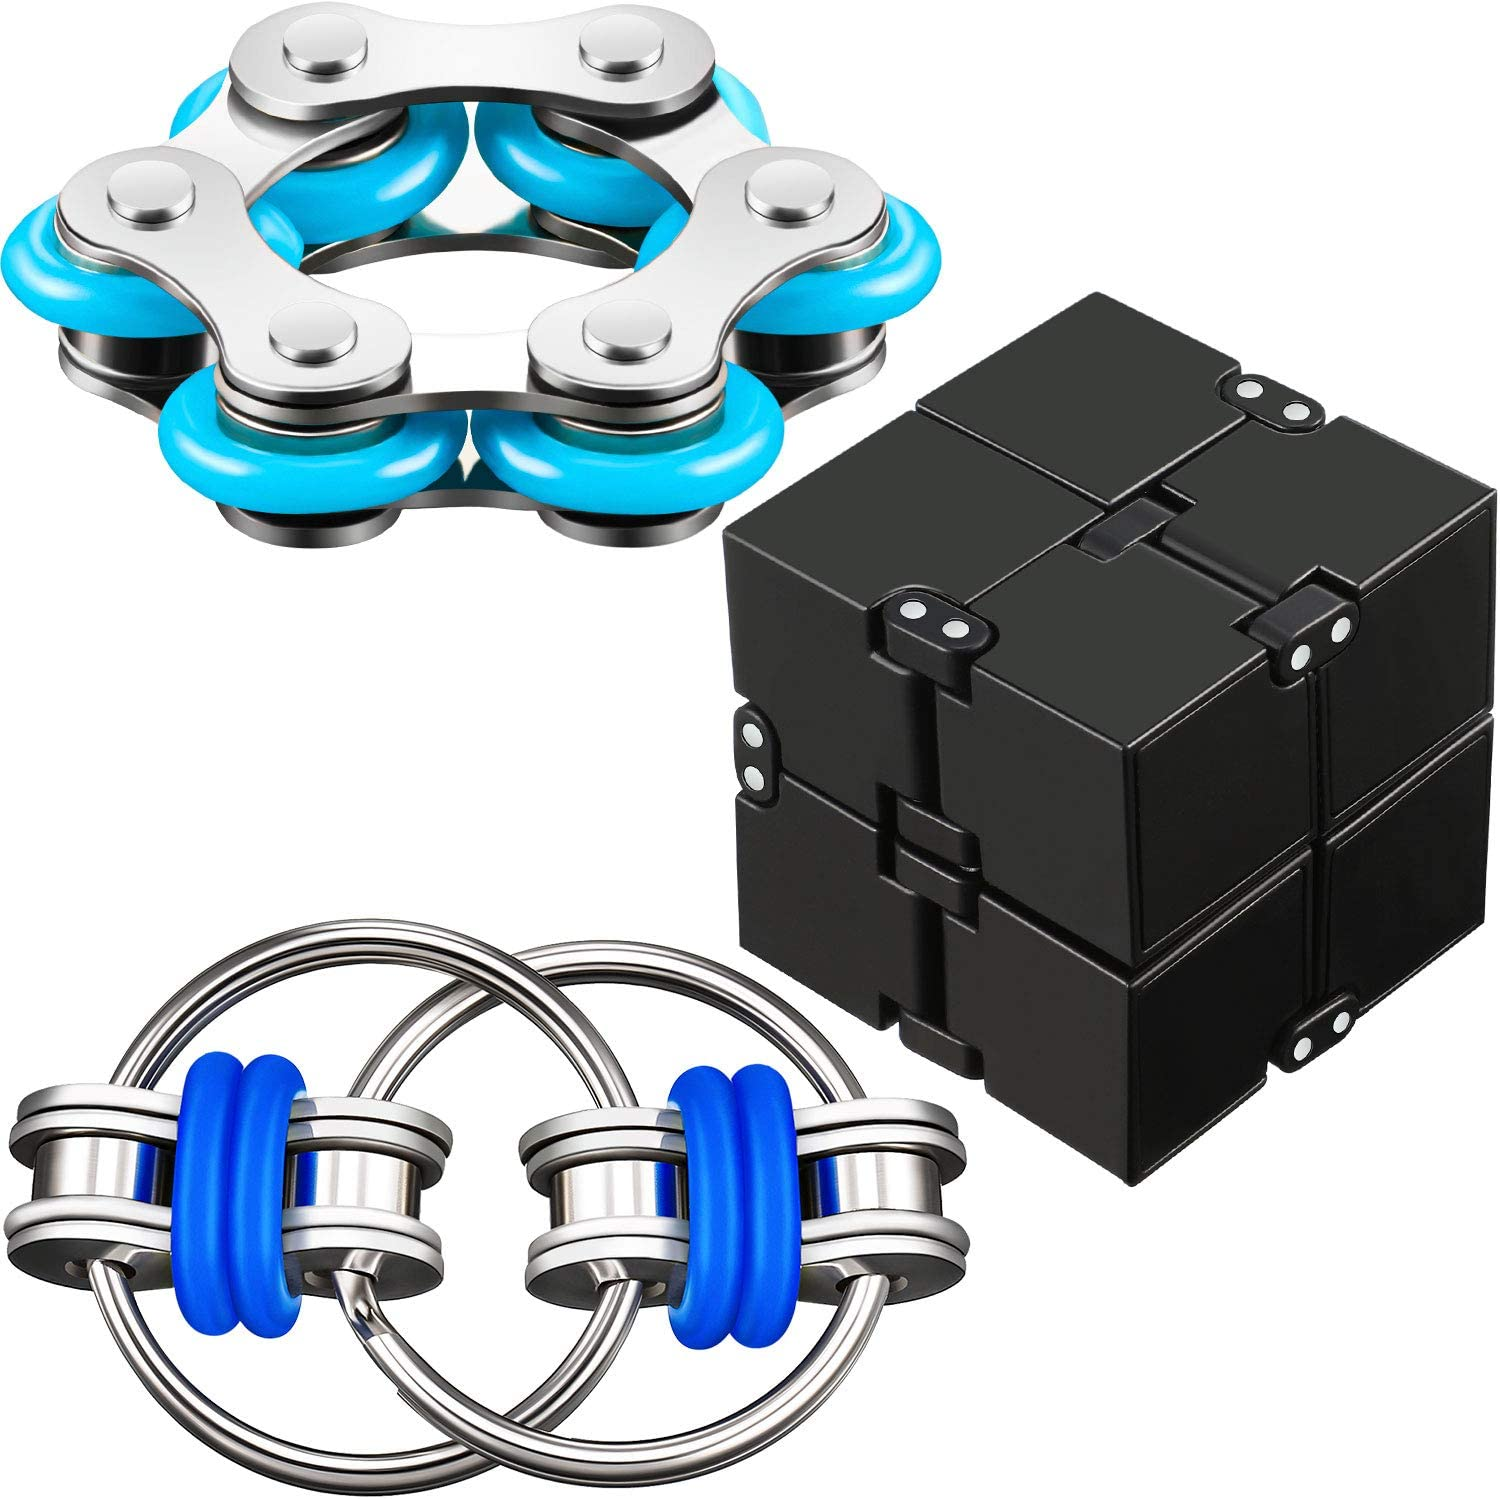 3 Popularity Pieces Fidget Toy Set Sale Include Six Key Inf Roller Chain